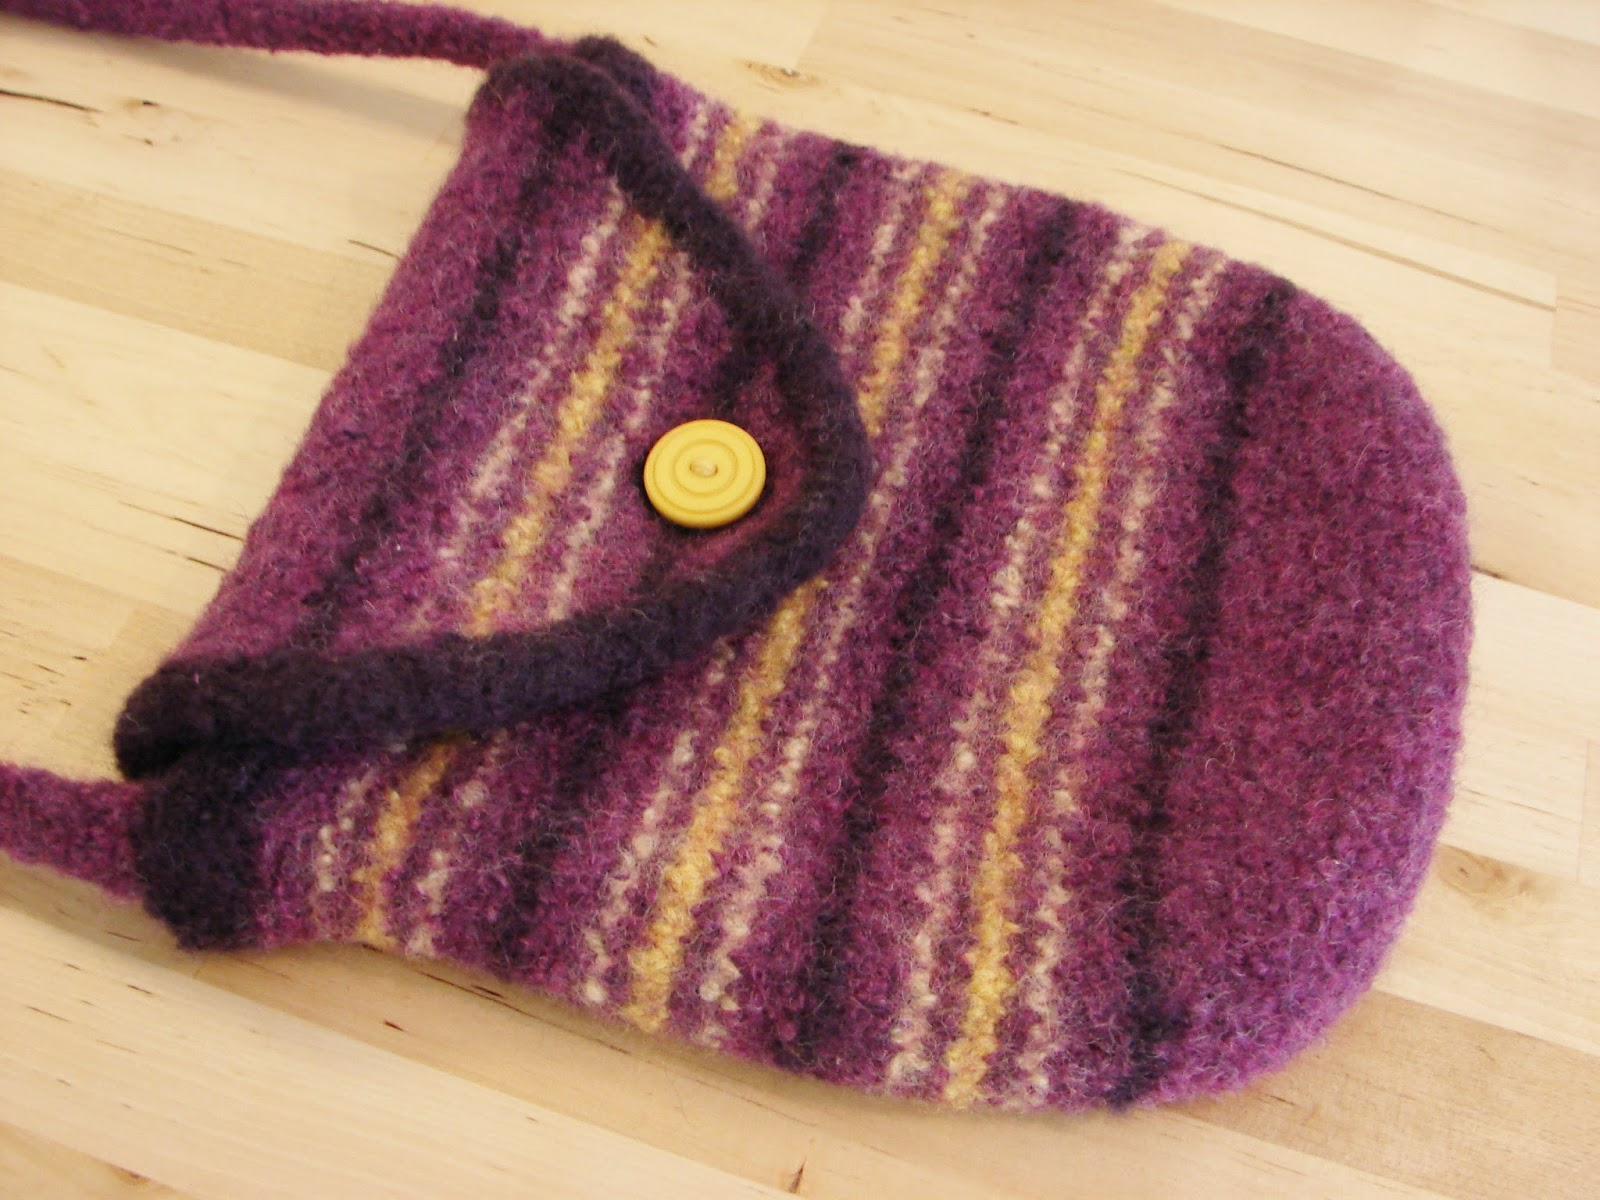 purse, bag, knitted, knit, felted, felt, striped, purple, yellow